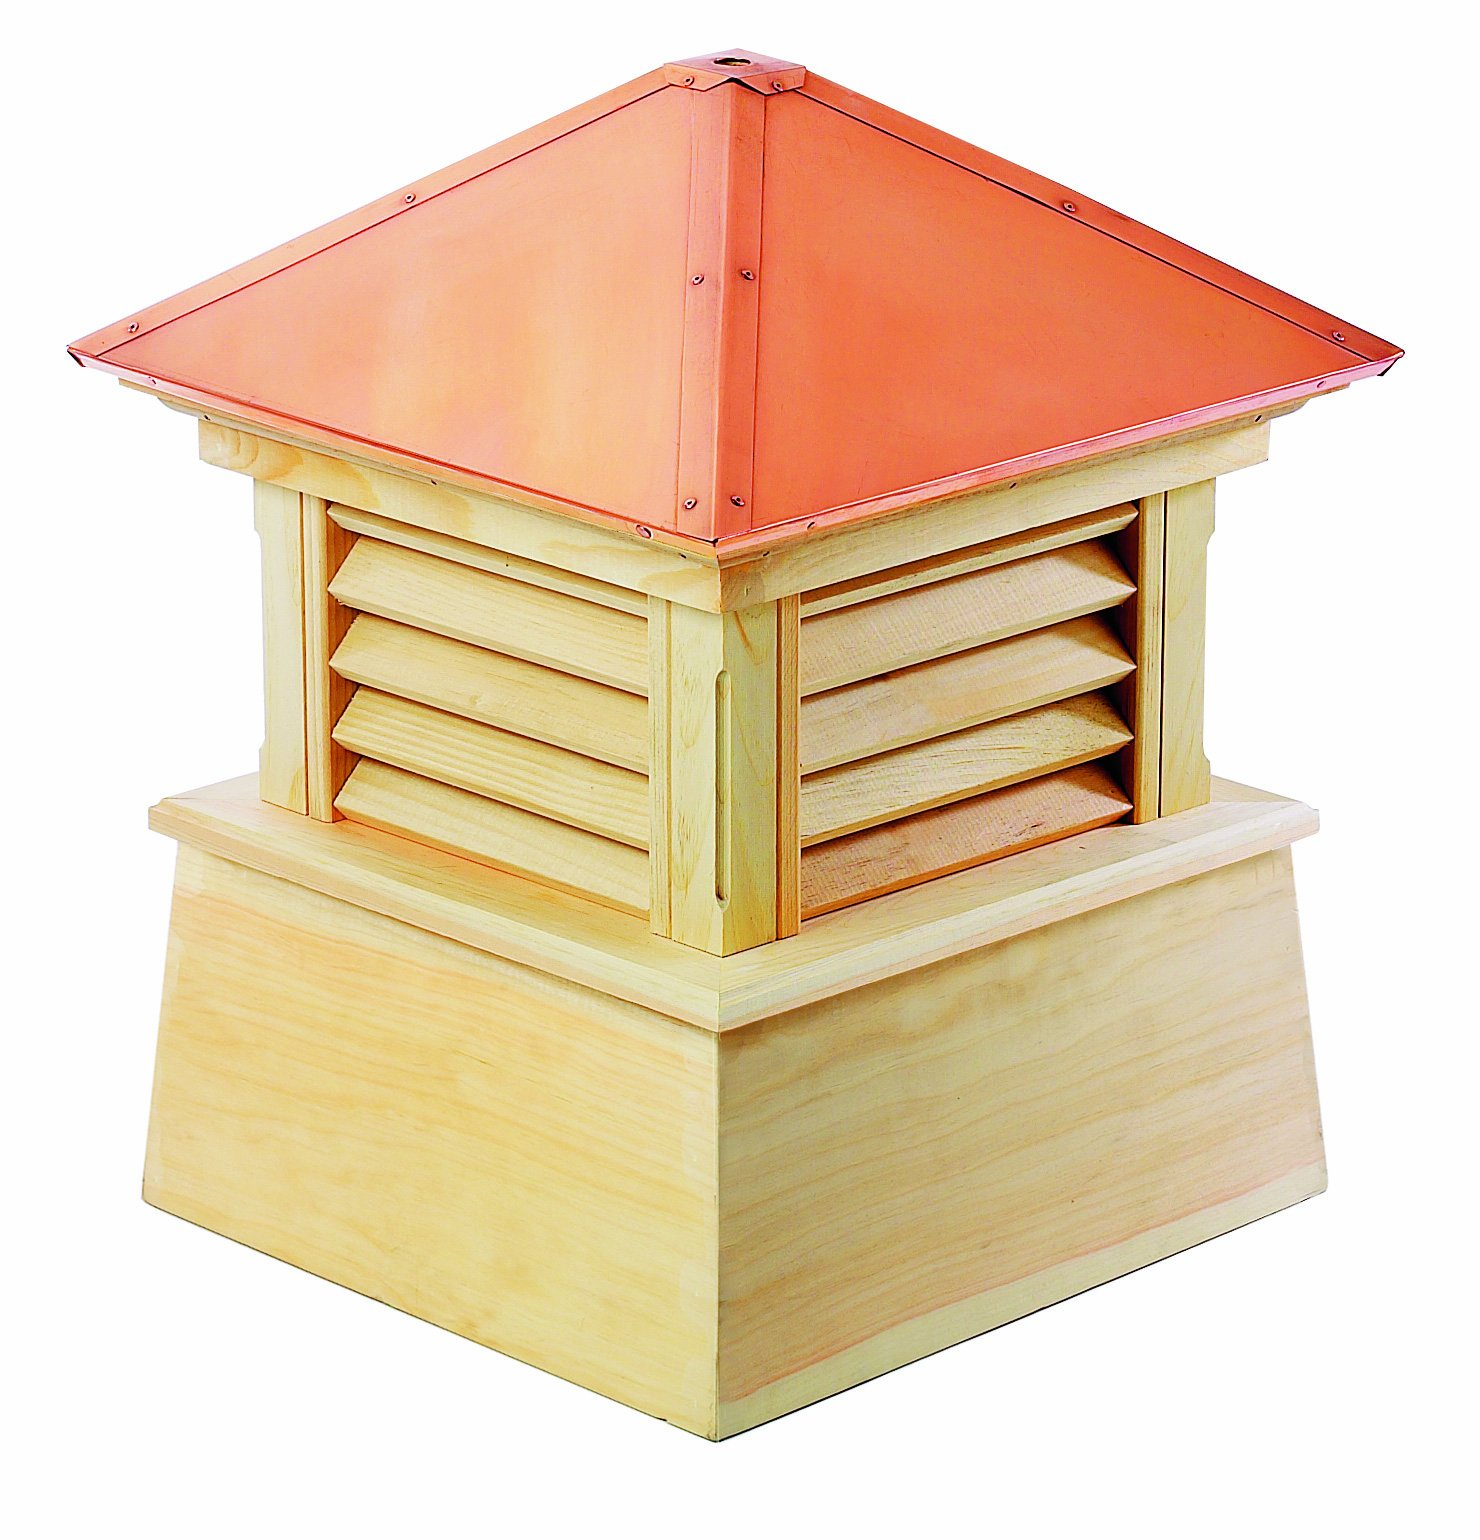 Good Directions Manchester Louvered Cupola with Pure Copper Roof, Cypress Wood, 18'' x 22'', Quick Ship, Reinforced Rafters and Louvers, Cupolas by Good Directions (Image #1)